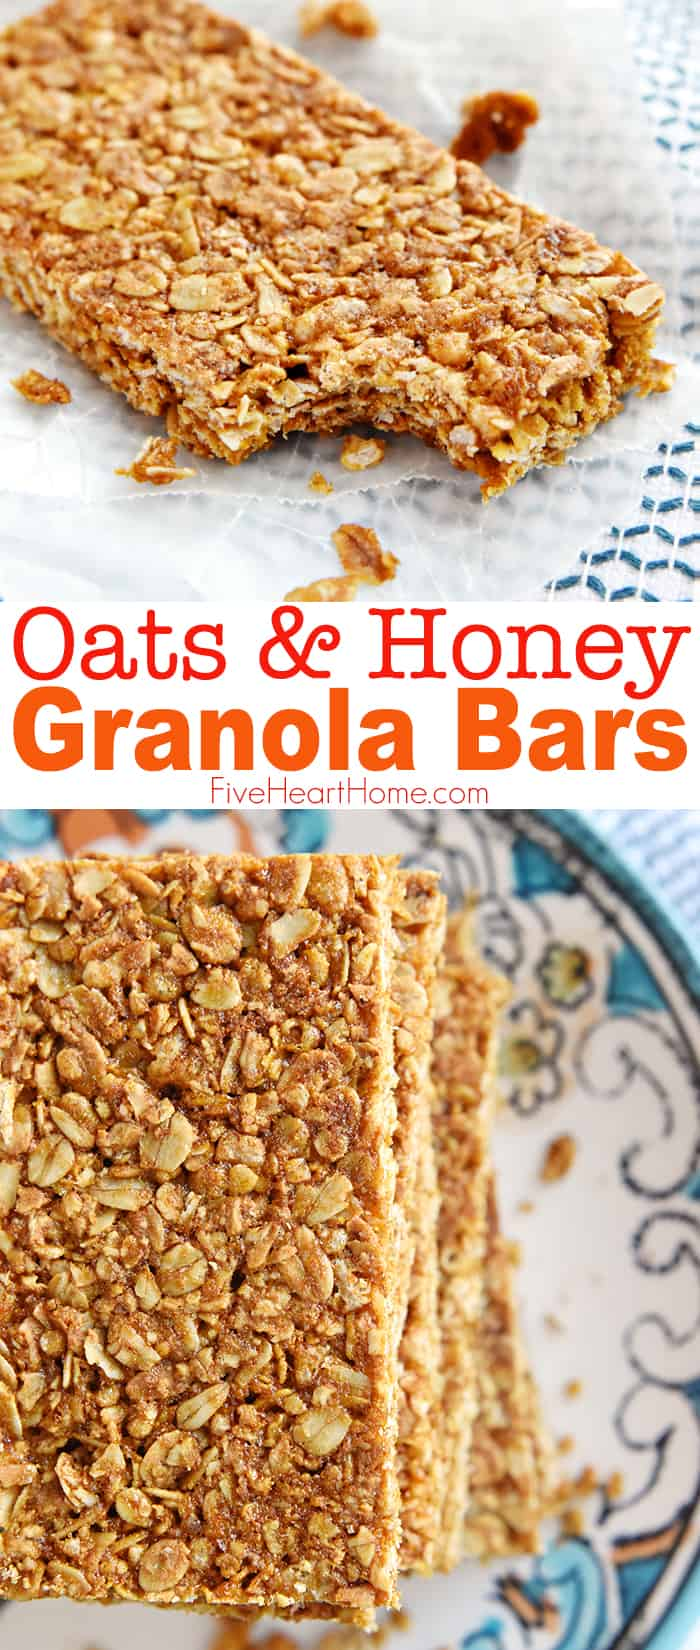 Oats and Honey Granola Bars ~ these homemade, all-natural granola bars are baked until slightly crunchy, making them perfect for breakfast-on-the-go or as a wholesome, portable snack! | FiveHeartHome.com #granolabars via @fivehearthome